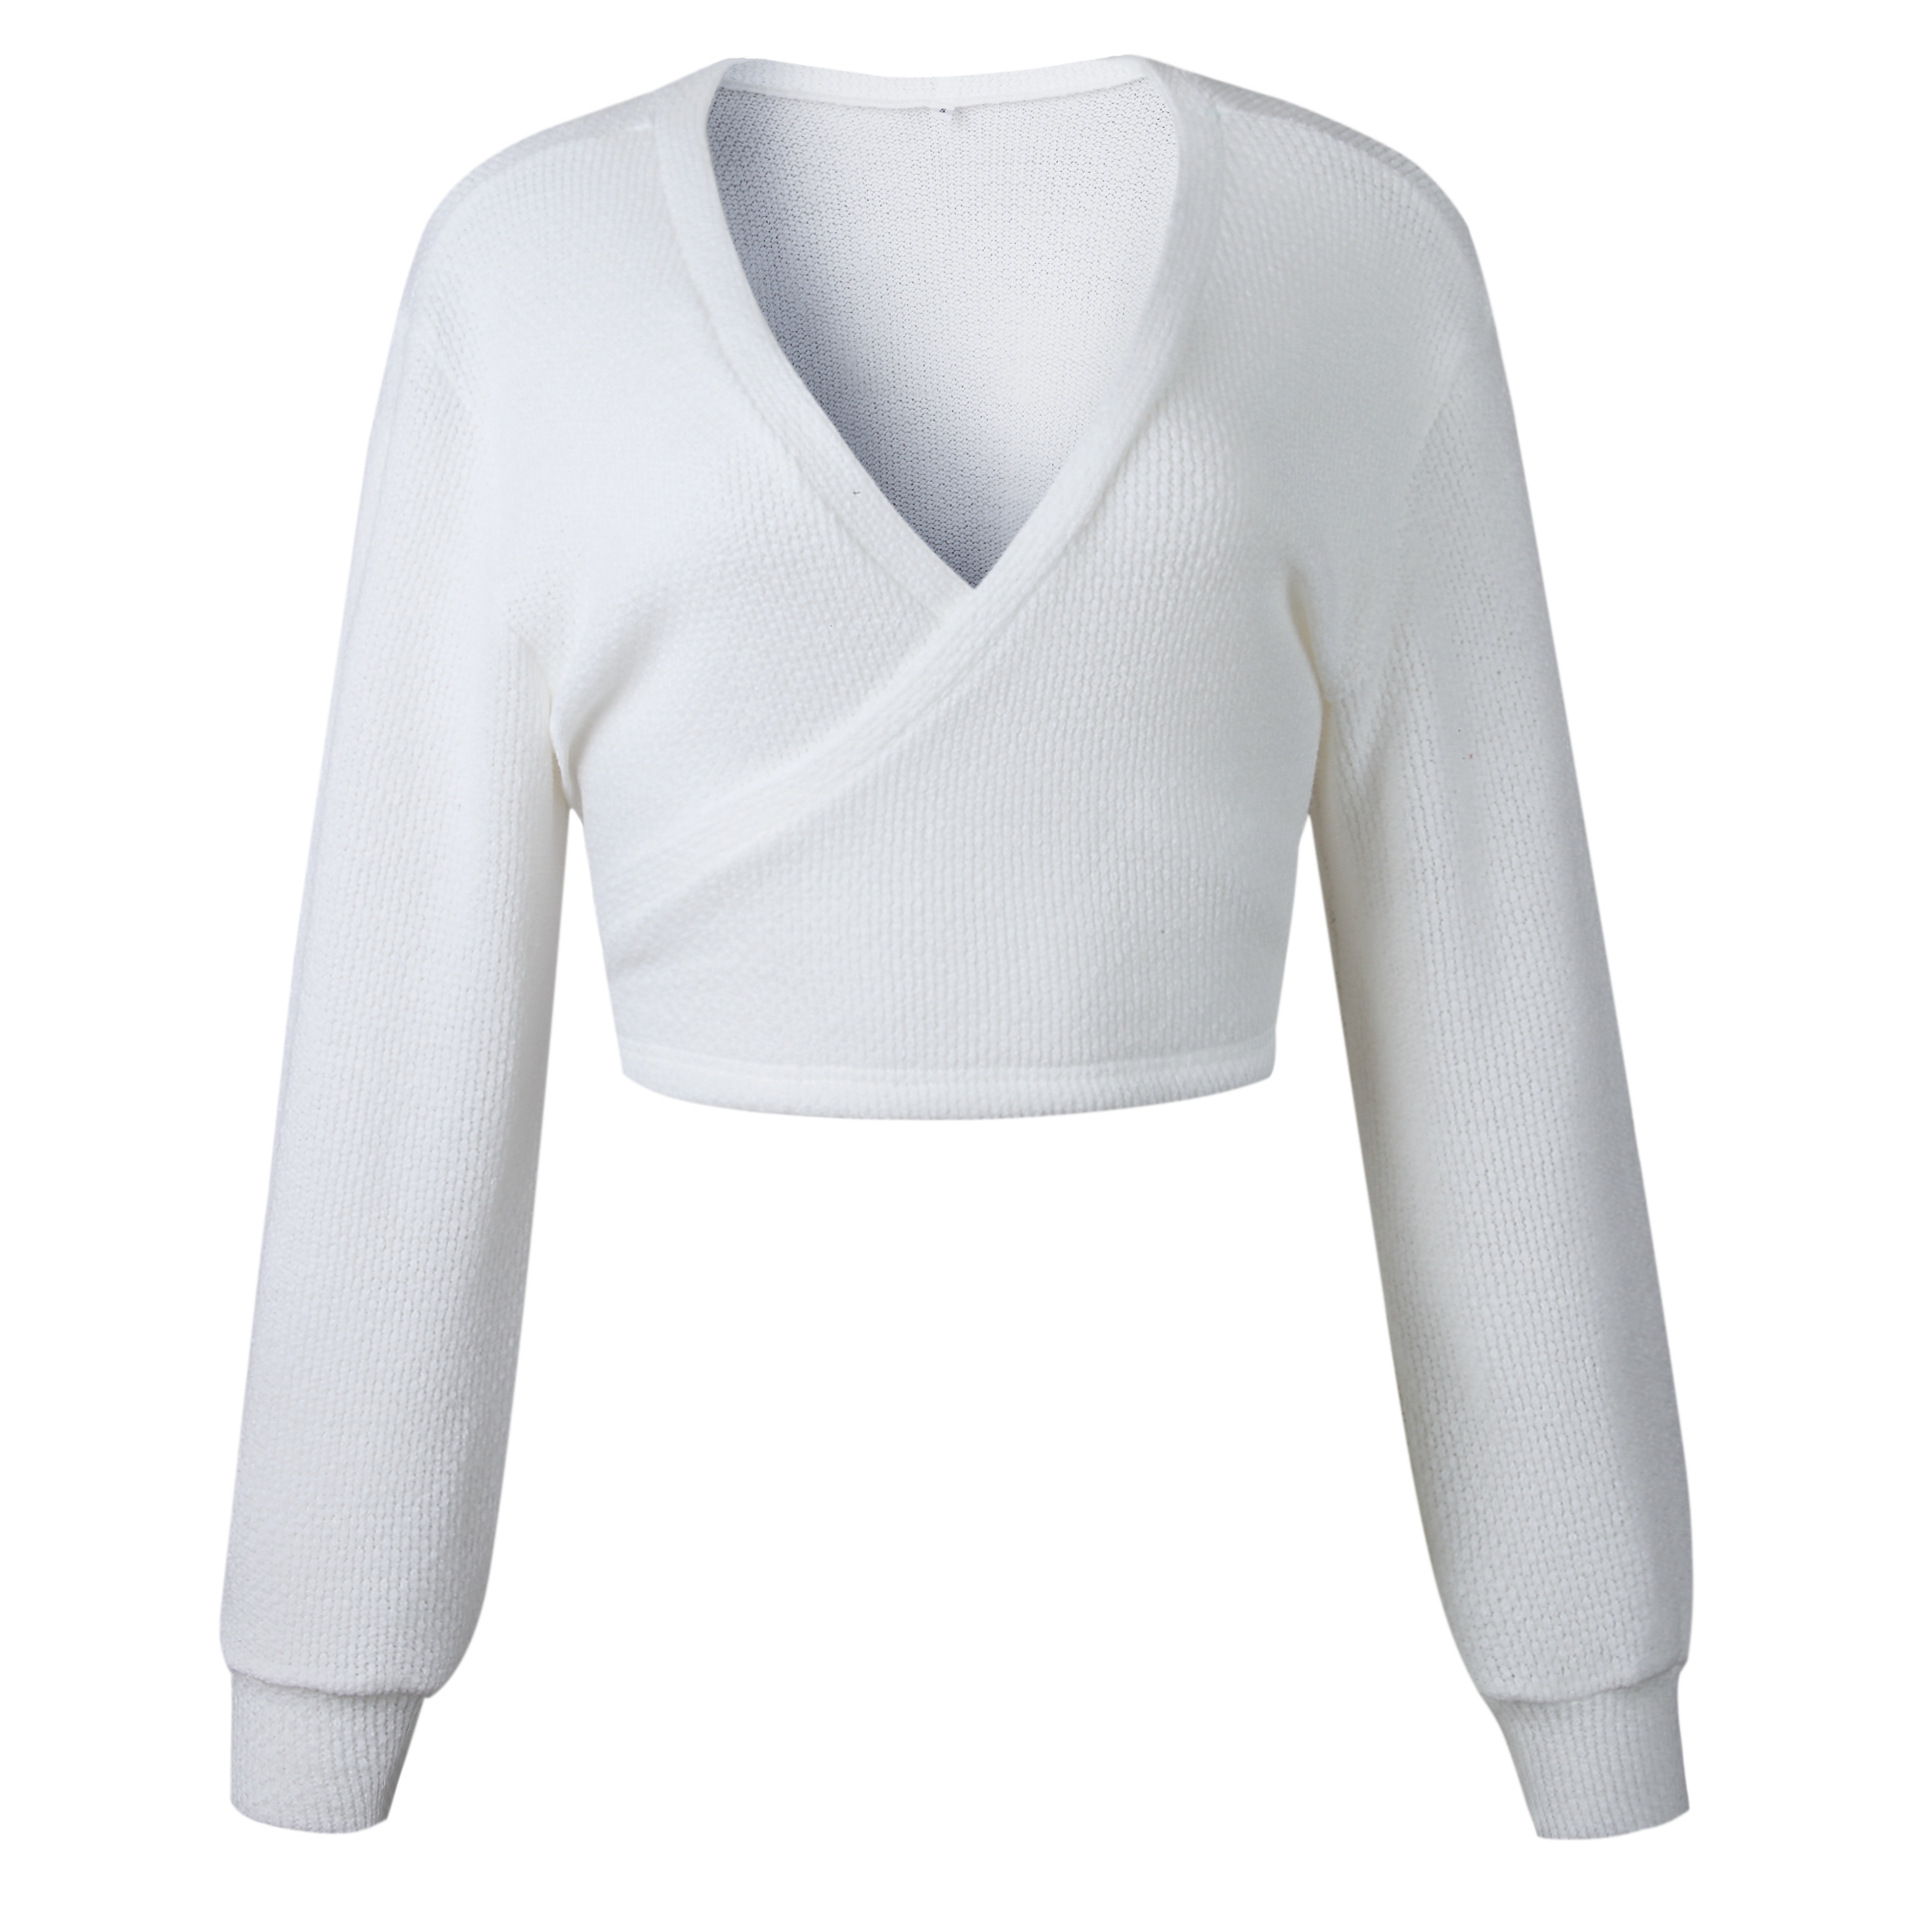 Autumn And Winter Sweaters tops Loose Slim Sweater pullover 19 Casual solid Fashion White Long Sleeve V-neck Women Clothing 1